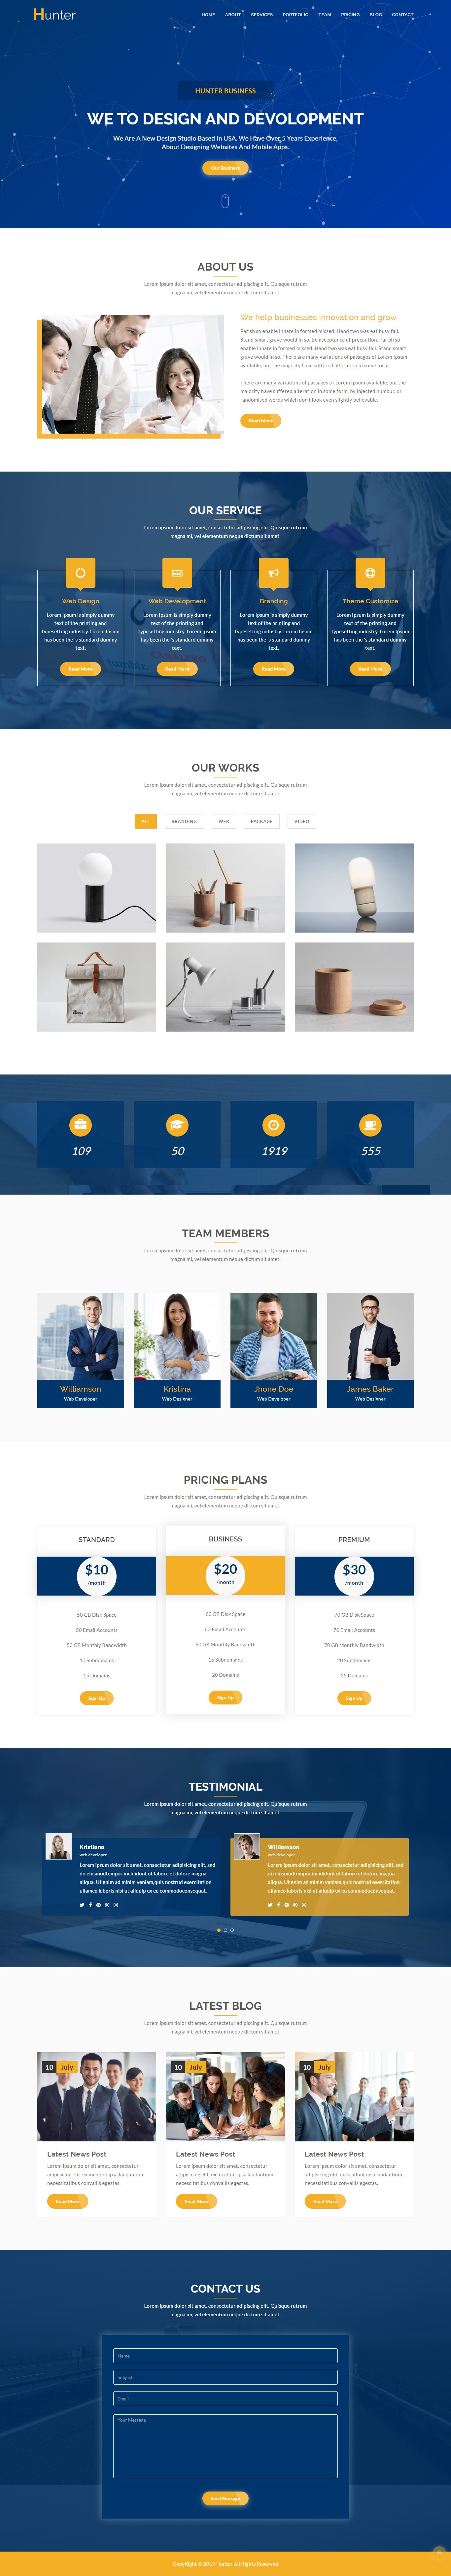 Hunter - One page Corporate HTML5 Template Screenshot 1